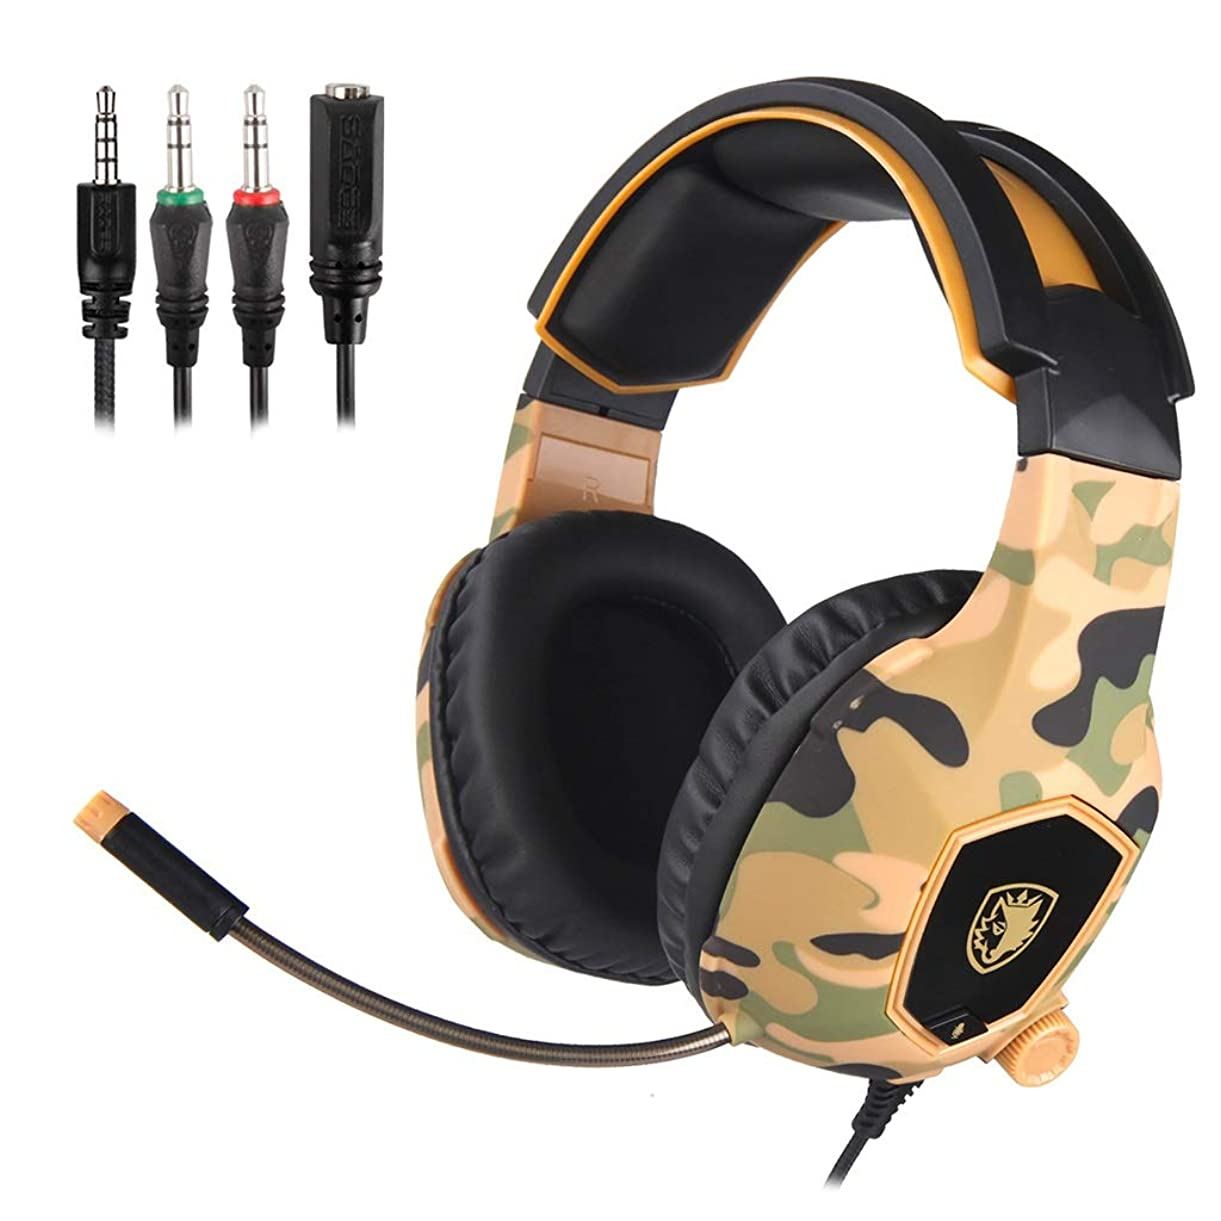 Noise Cancelling Surround Sound Gaming Headphones-3.5mm Comfortable Soft Memory Earmuffs with Mic,for PC Laptop Computer Mobile Phone (Color : Camouflage Yellow) uodua3761